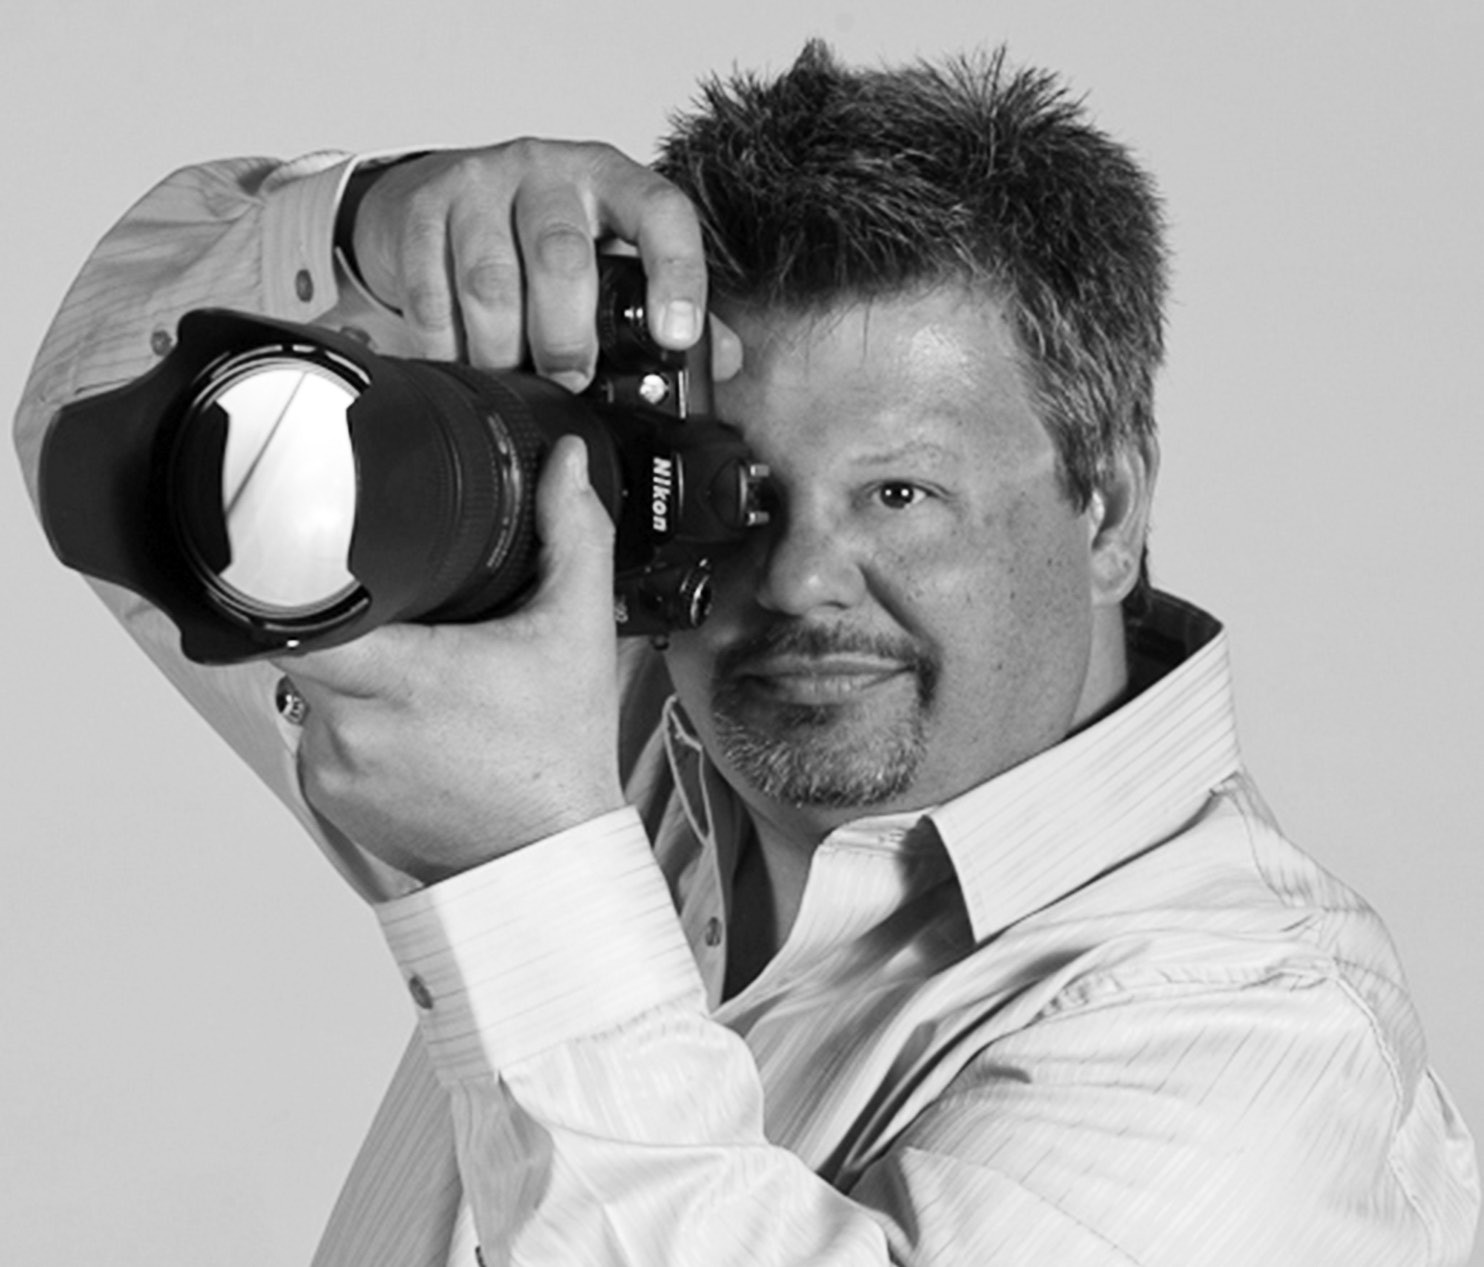 Photographer Richard Schultz with camera.